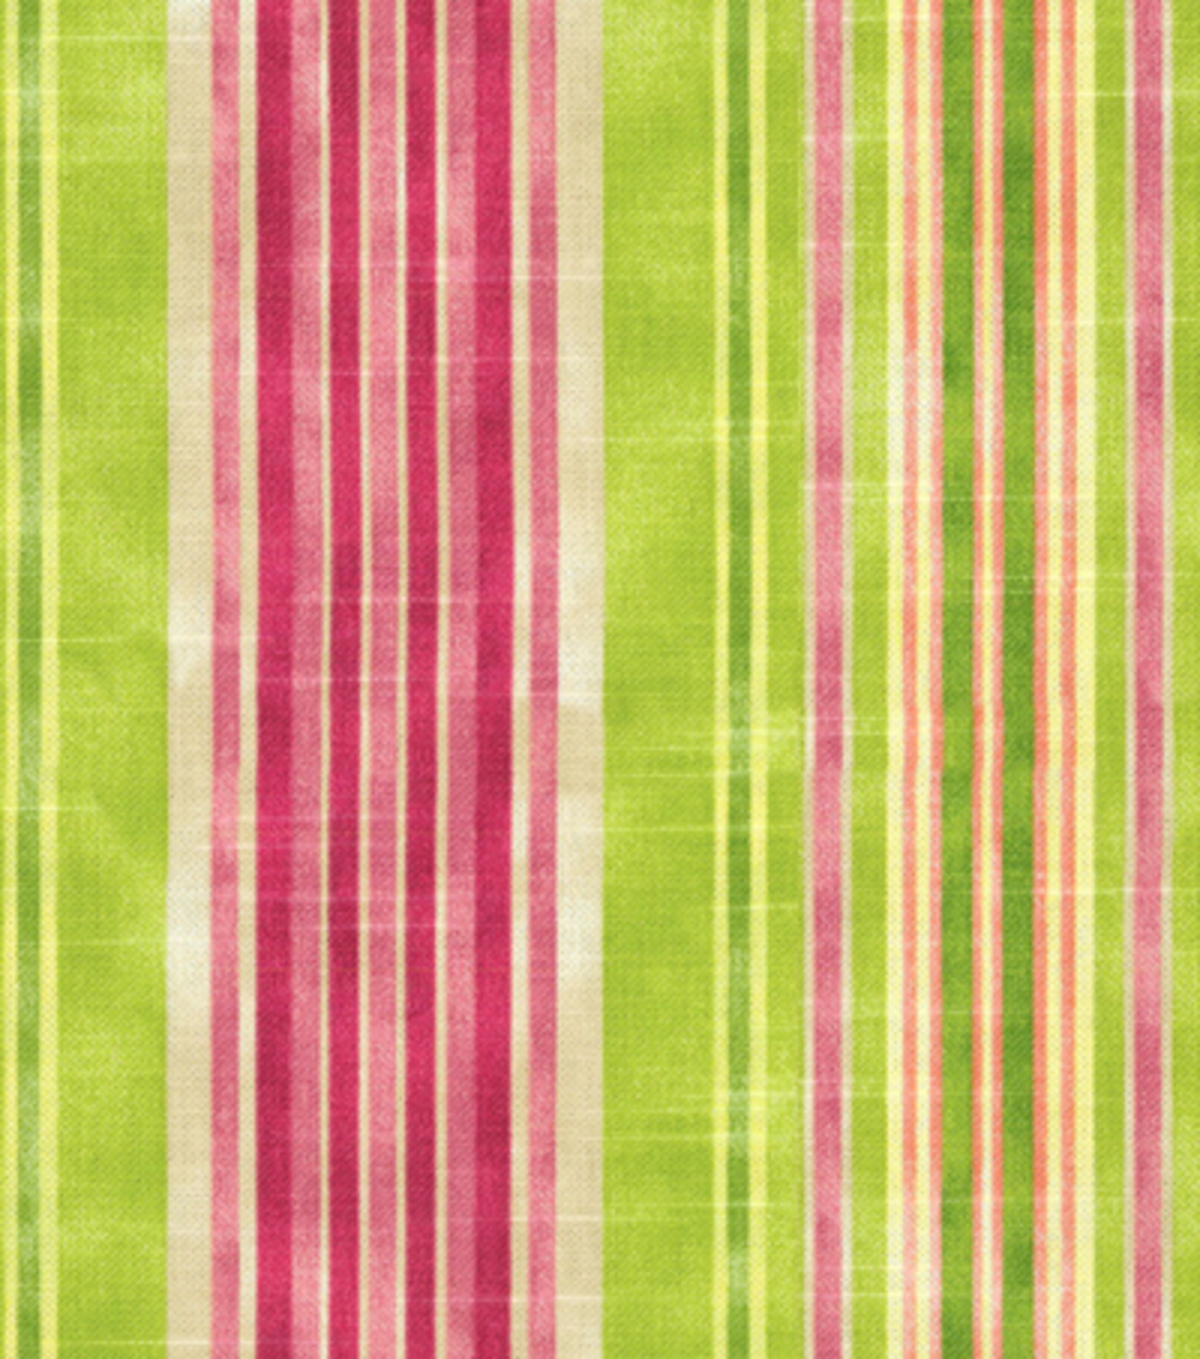 Home Decor 8\u0022x8\u0022 Fabric Swatch-HGTV HOME One Way Granny Smith